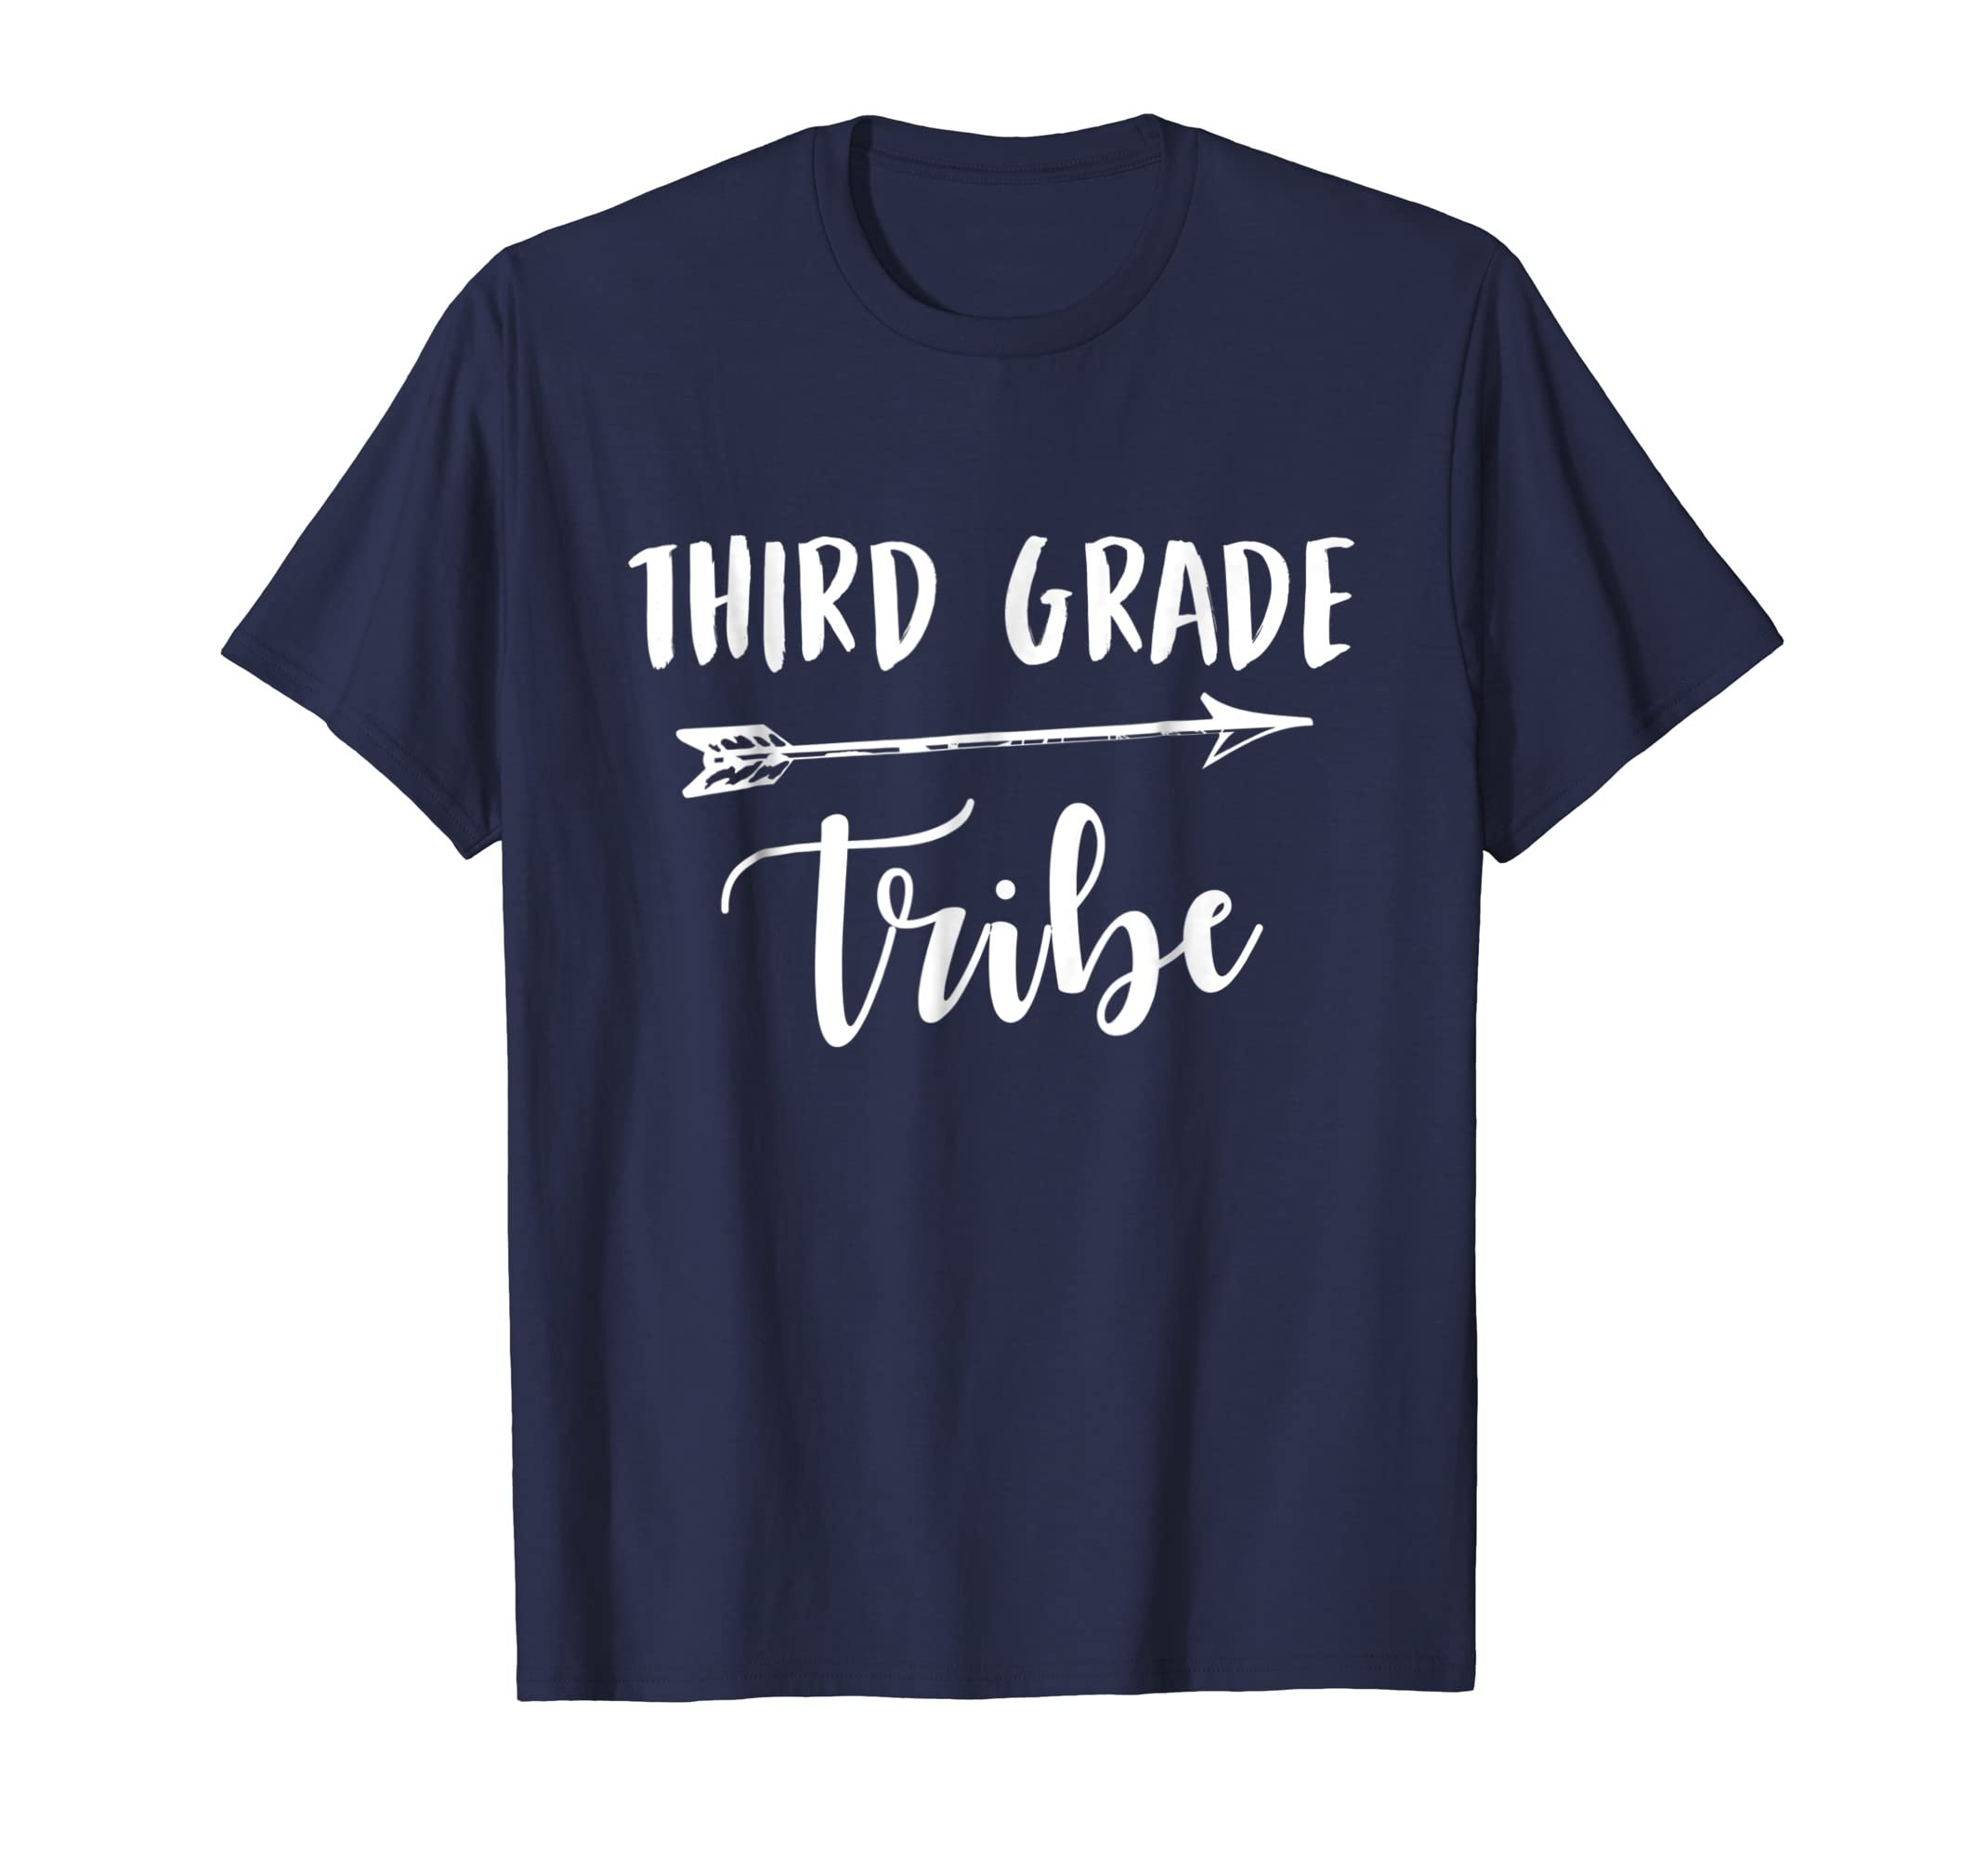 Third Grade Shirt,Third Grade Teacher Team T-Shirt, Gift-fa